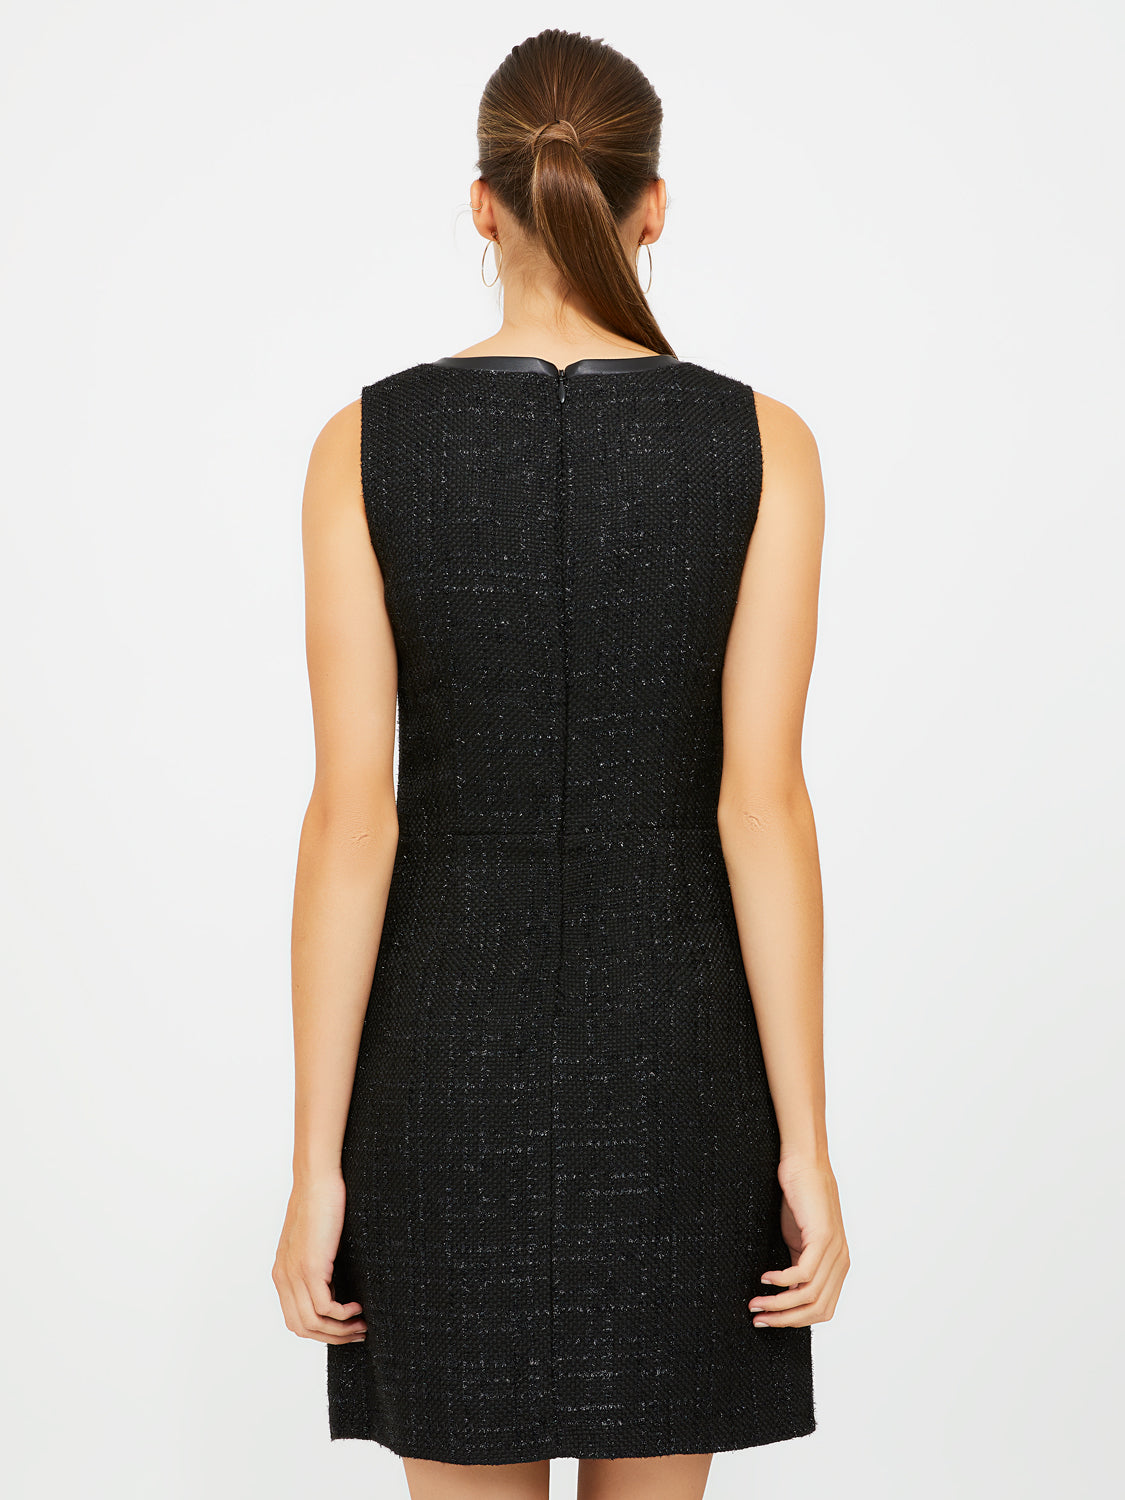 Tonal Boucle Metallic Fiber A-Line Dress